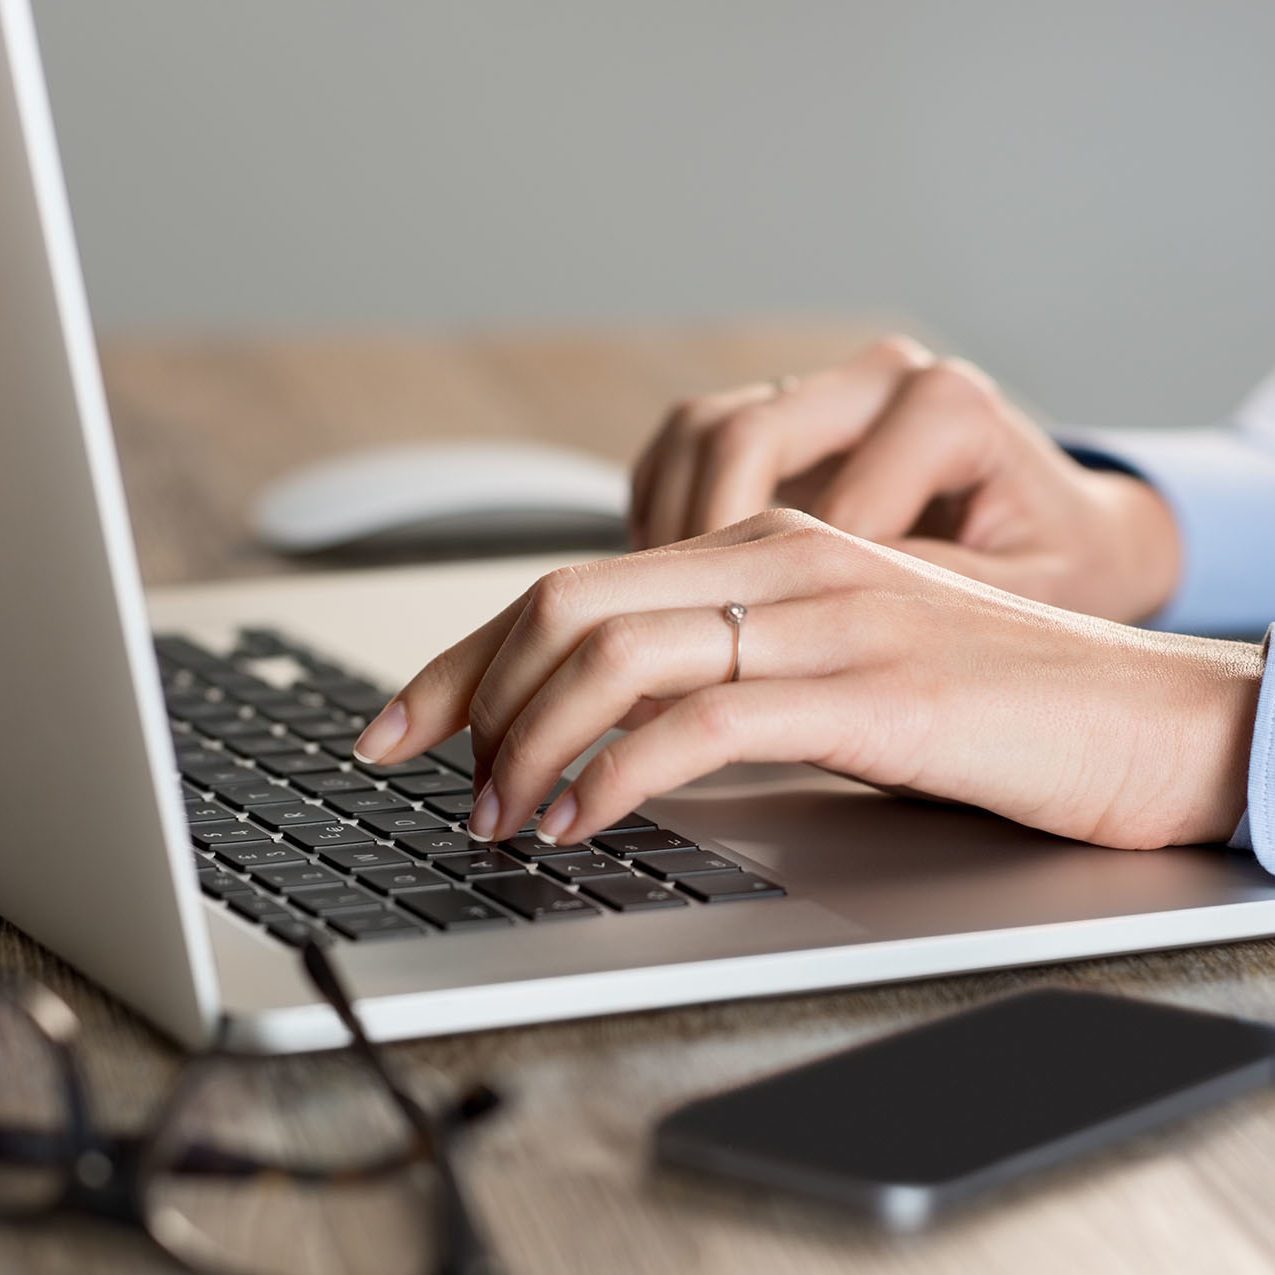 Closeup shot of a woman hand typing on keypad of her laptop. Secretary working in office at desk. Shallow depth of field with focus on typing on keypad of laptop.